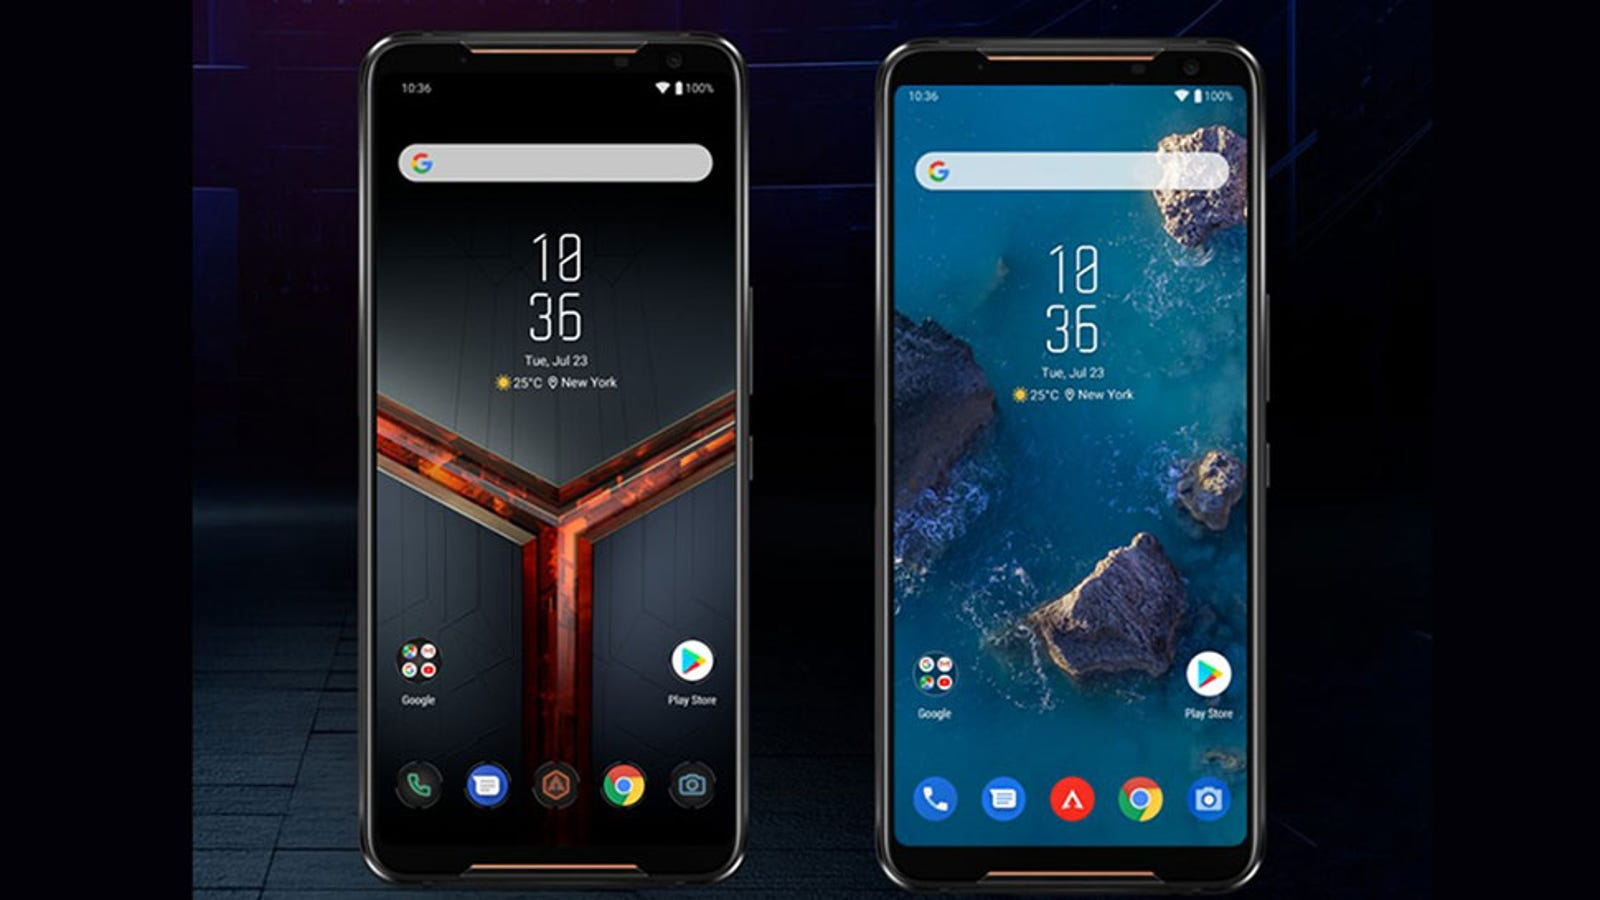 Asus May Have Made the Most Powerful Android Phone Yet